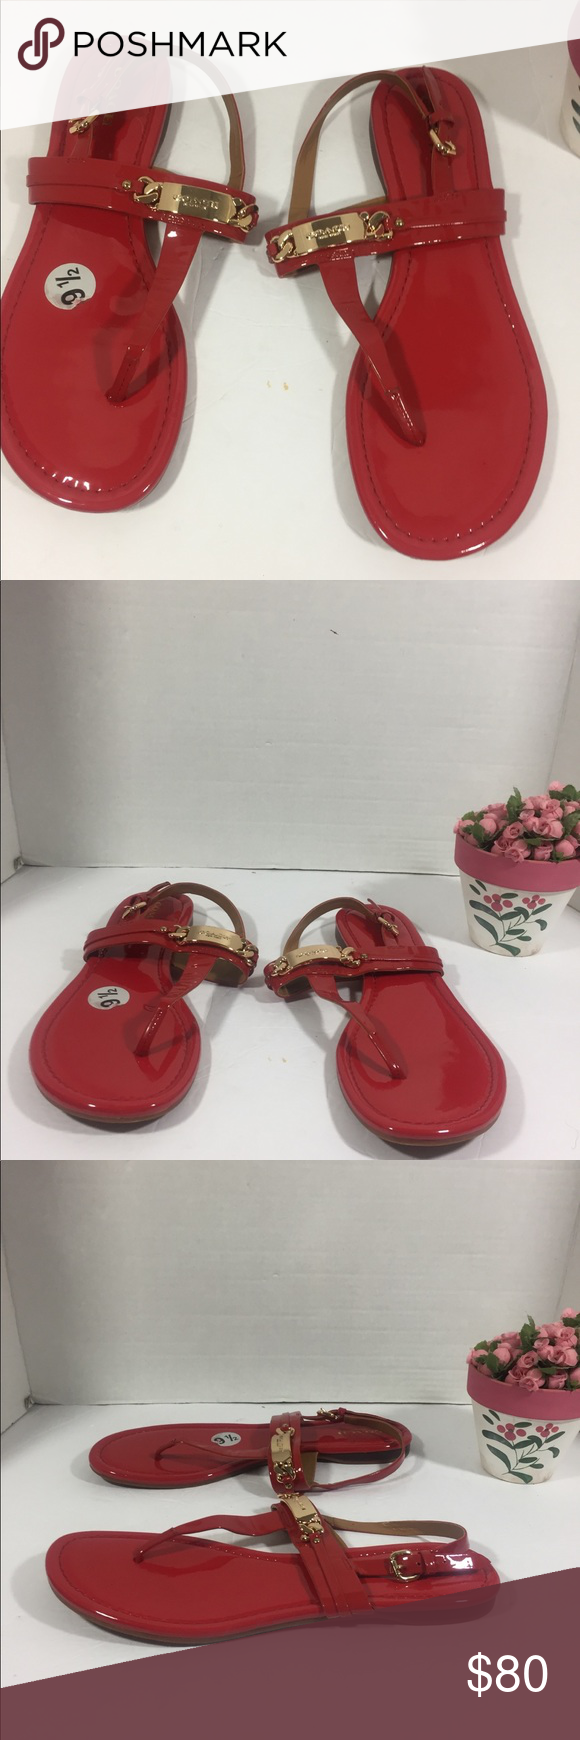 c5dc602e9 Coach Caterine Women s Red Sling Back Sandals Coach Catherine Women s Red  Sling back Patent Leather Sandals